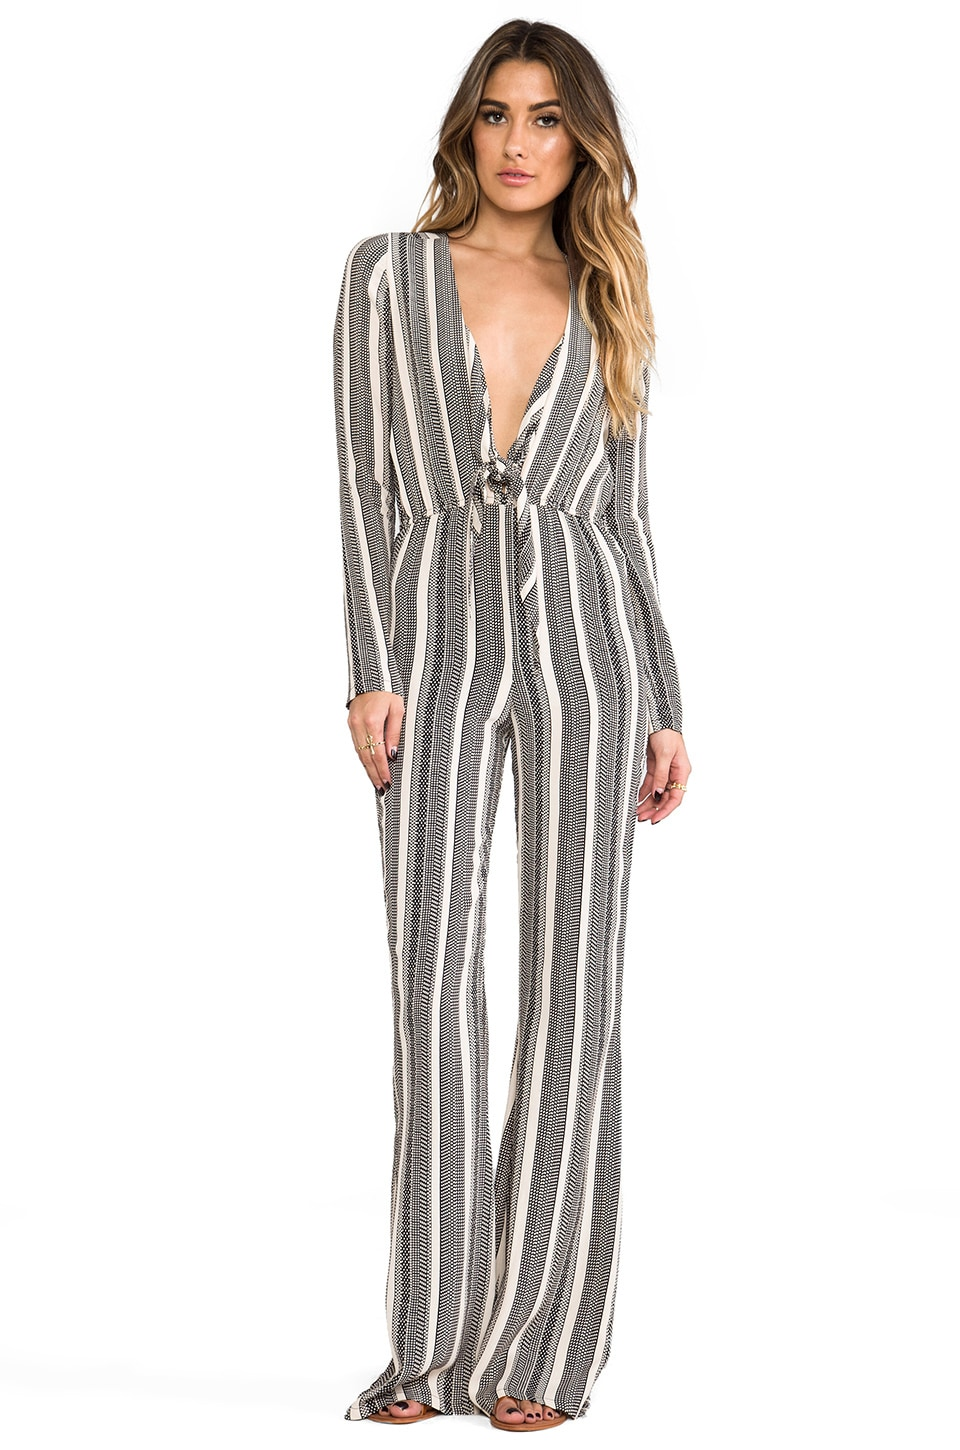 STONE_COLD_FOX Stardust Jumpsuit in Black & Ivory Stripe